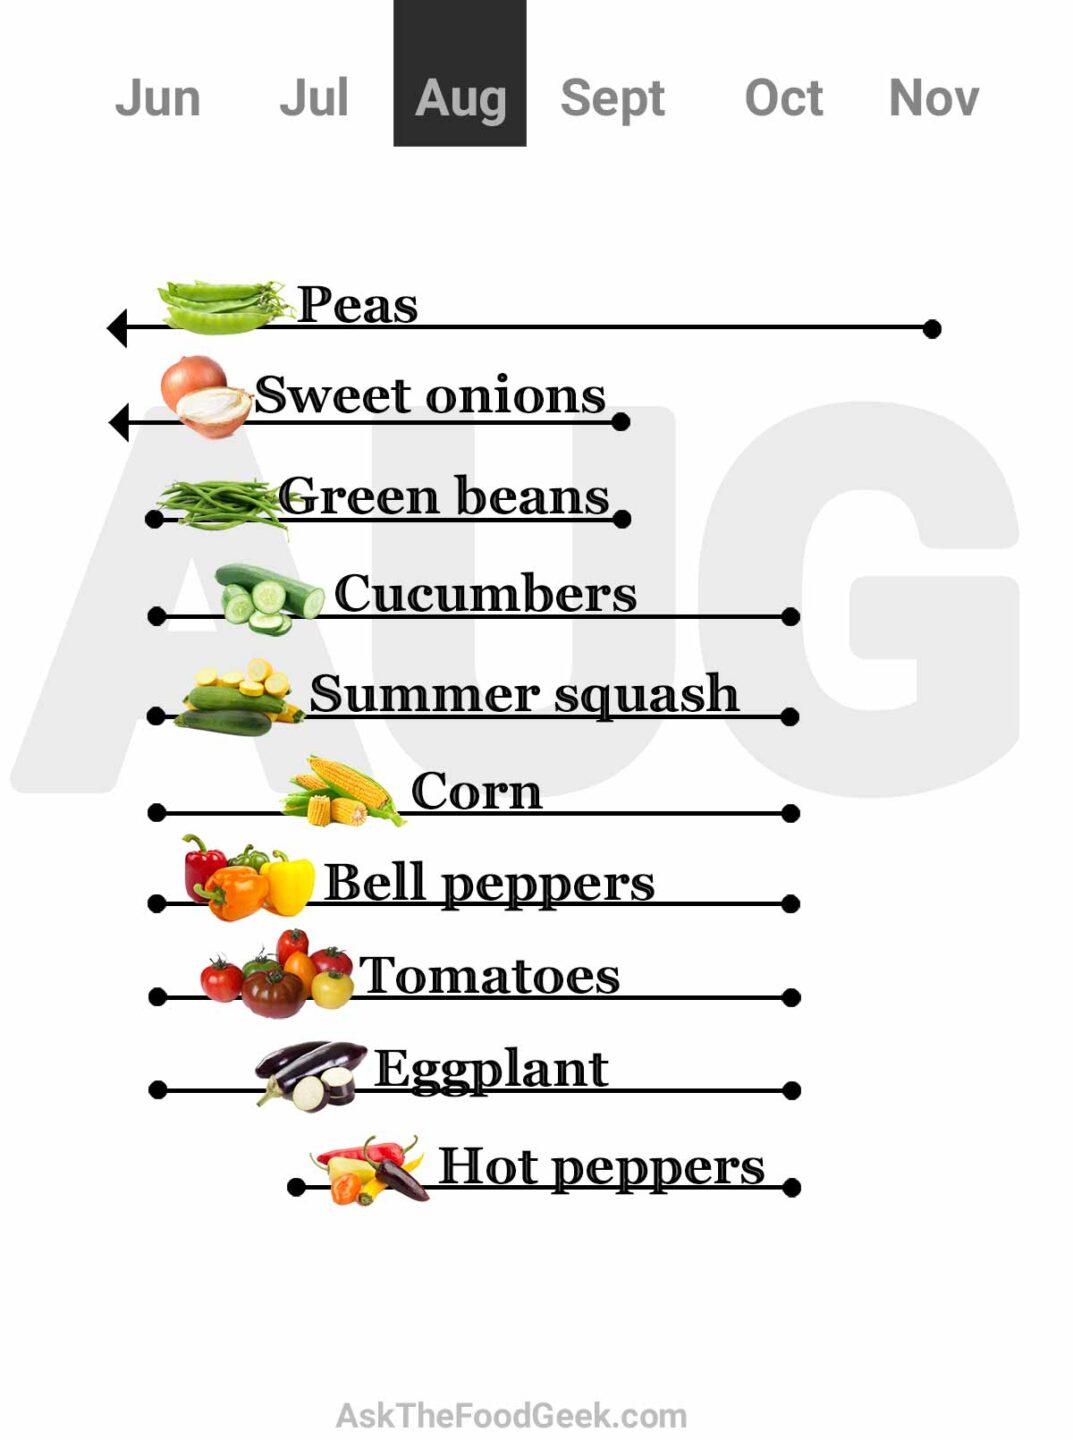 Chart for august: what vegetable are in season (peas, sweet onions, green beans, cucumbers, summer squash, corn, bell peppers, tomatoes, eggplants, and hot peppers)